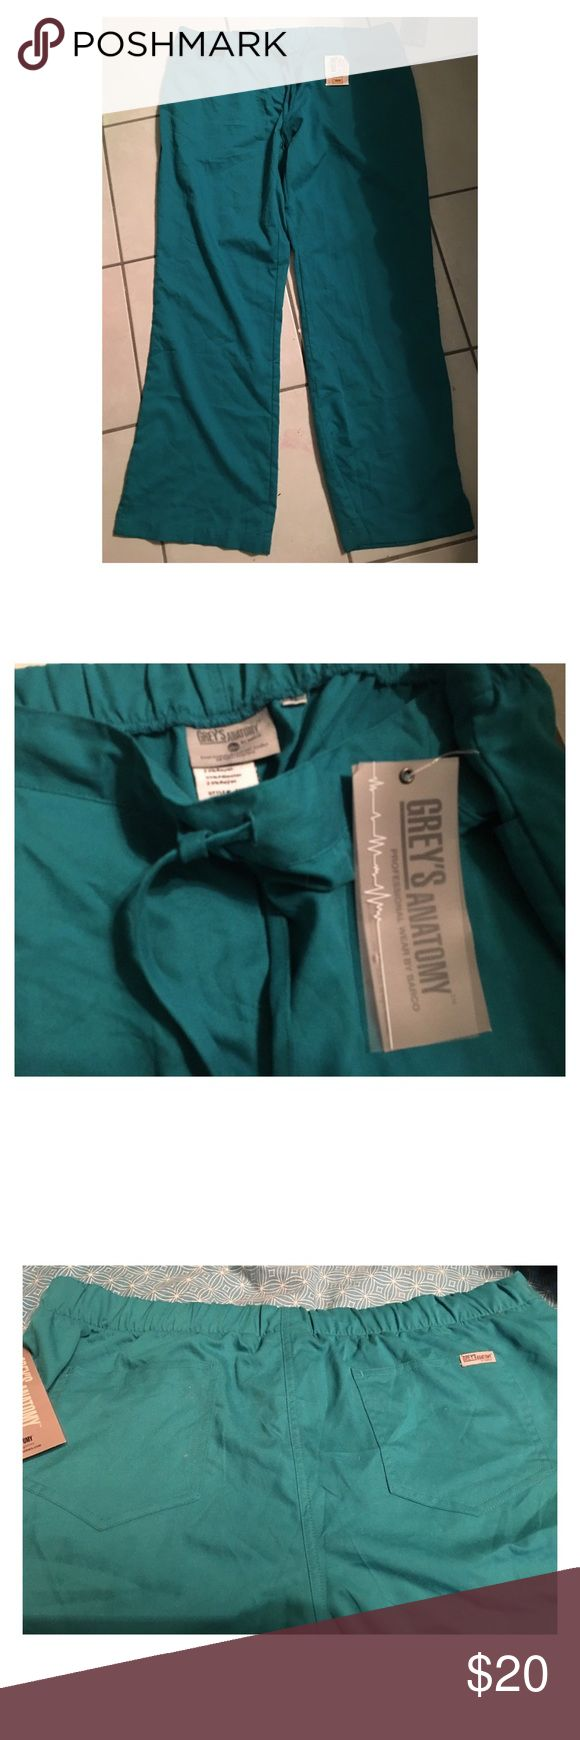 {Grey's Anatomy} NWT teal scrub pants Brand new with tags, just tried on and never ended up wearing. Super soft and pretty teal color! Pants